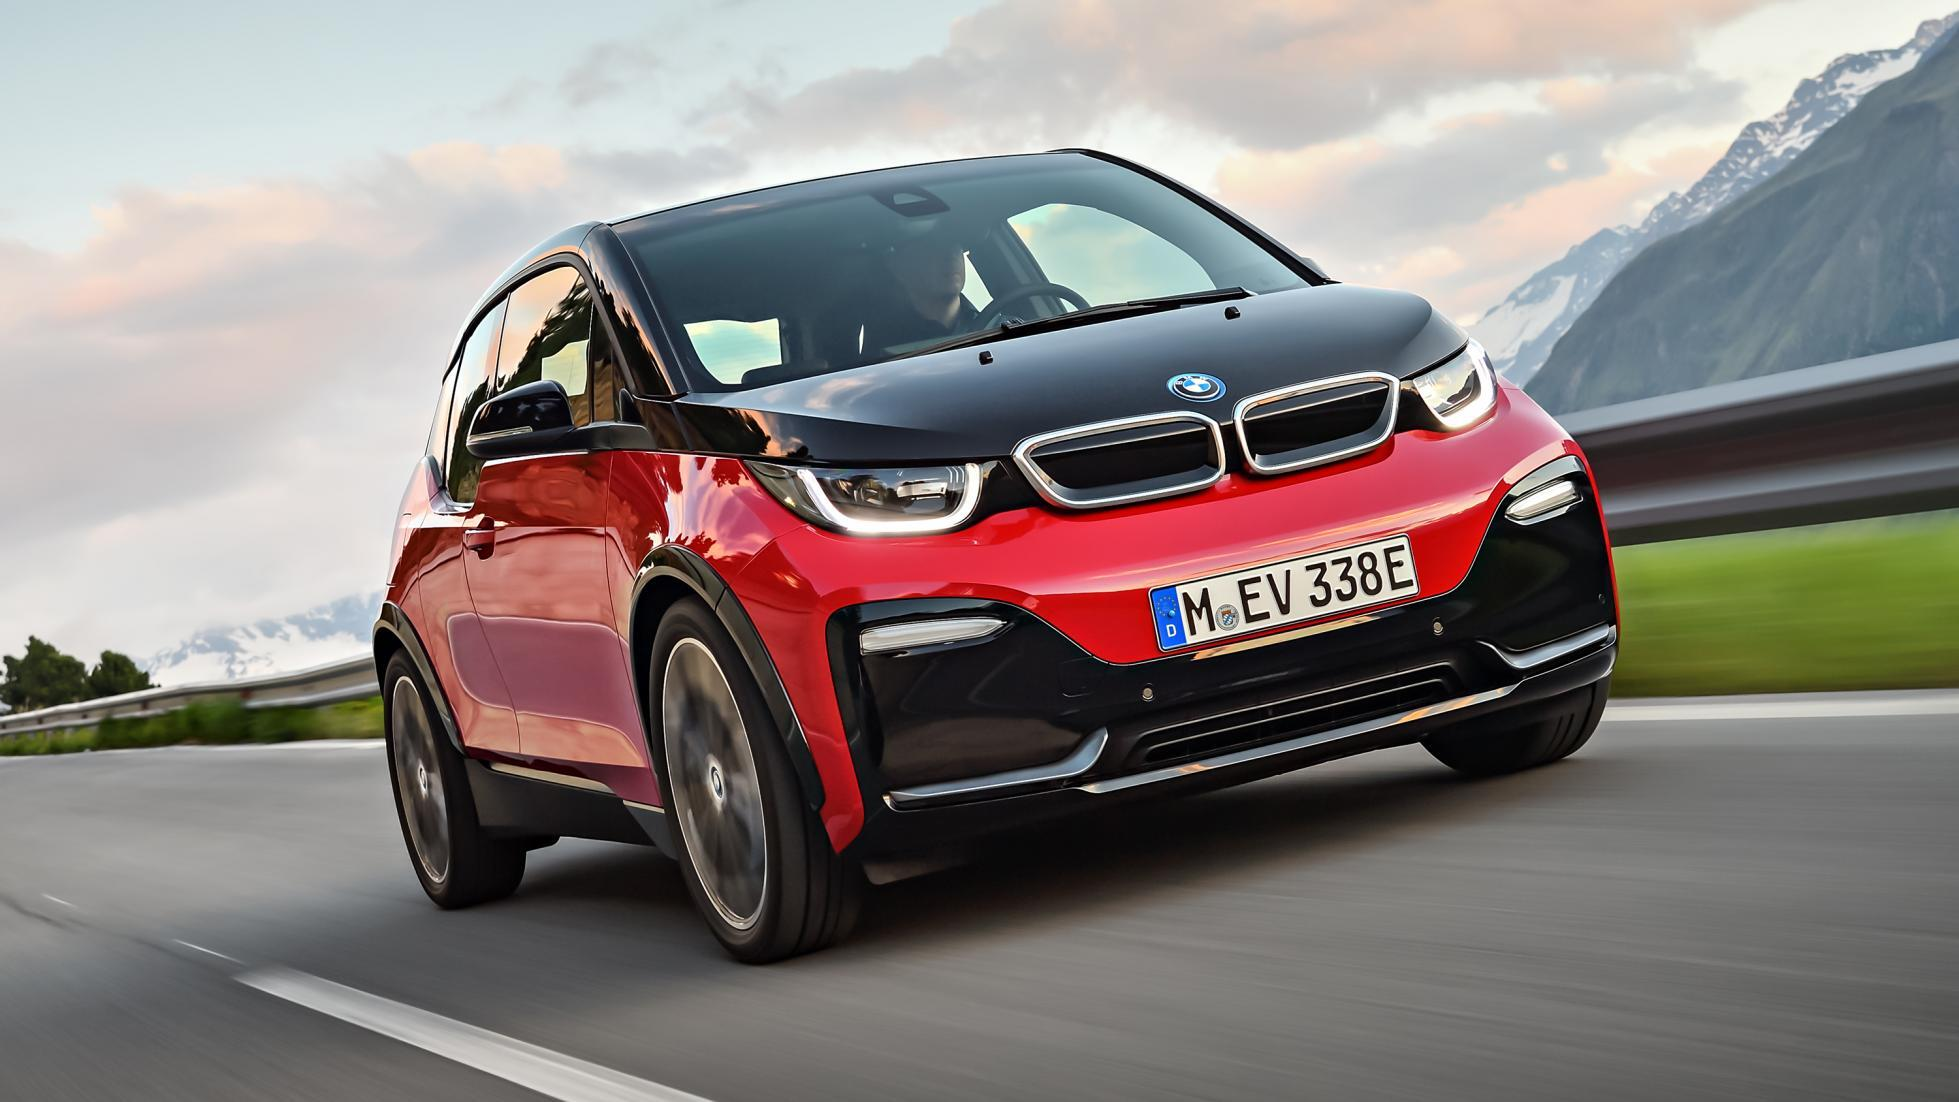 bmw has made a small electric hot hatch - car news - bbc topgear